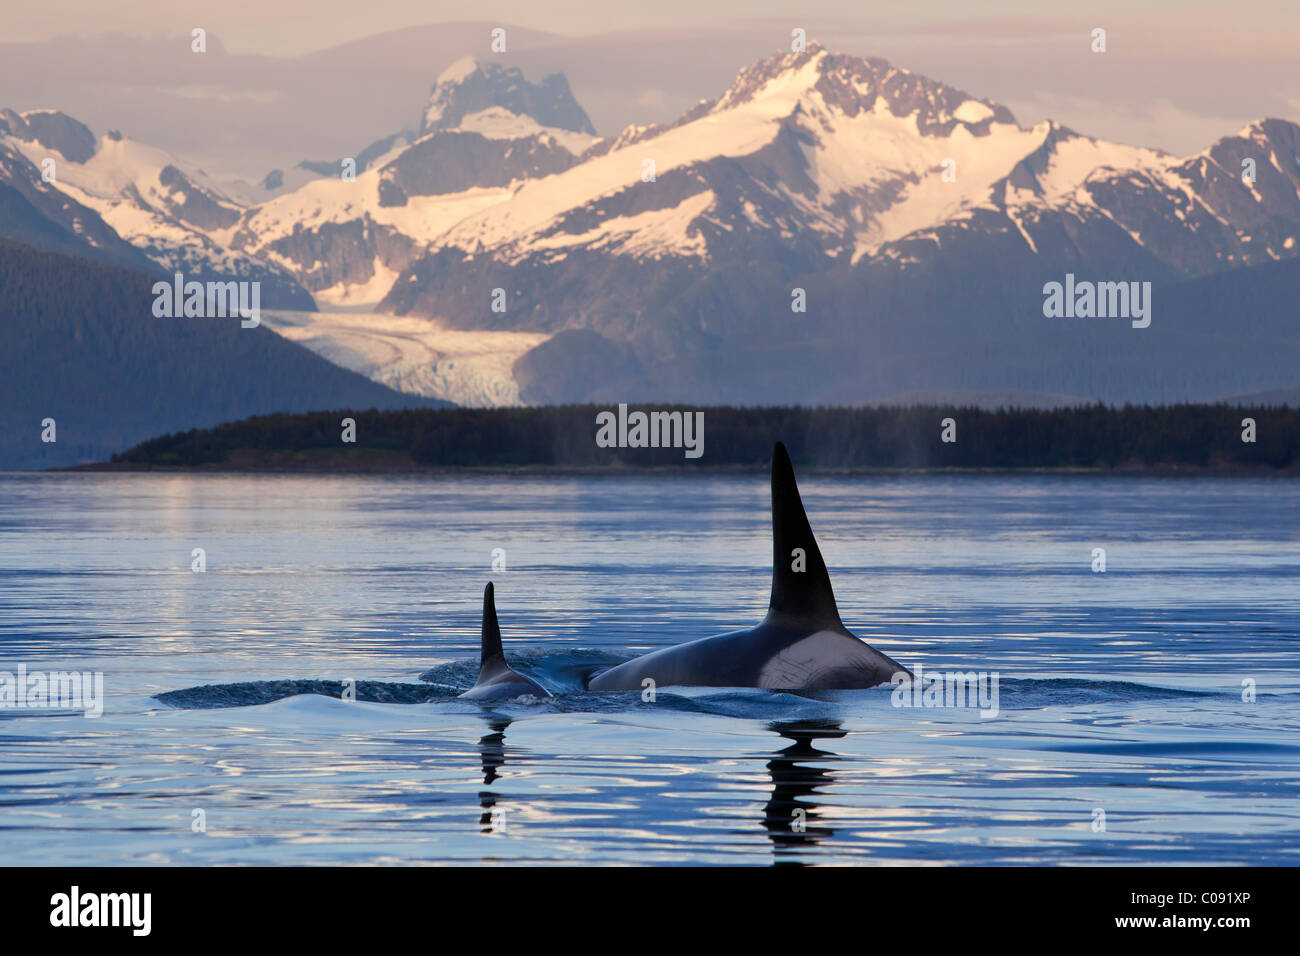 Two Killer whales surface in Lynn Canal as the last light of the day illuminates Herbert Glacier, Inside Passage, - Stock Image